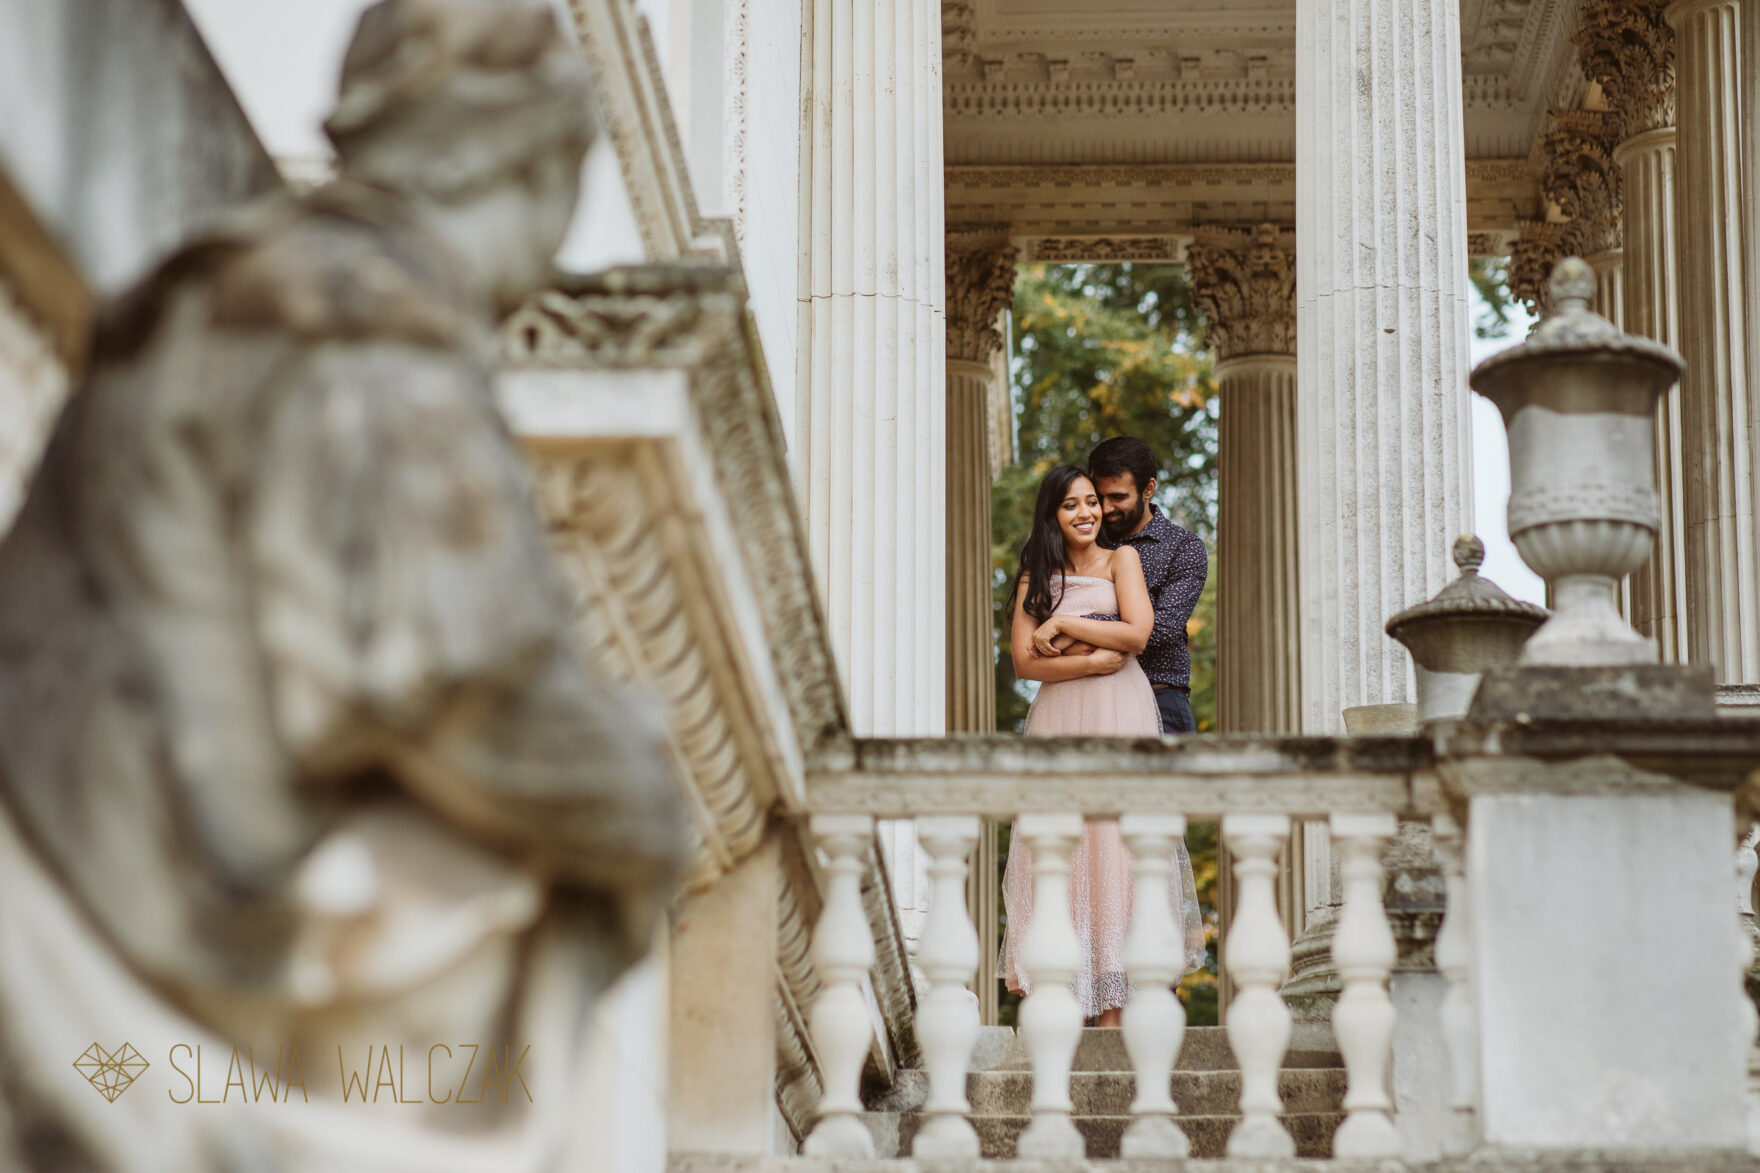 Pre wedding photographer Chiswick House posing Asian couple for their engagement photos